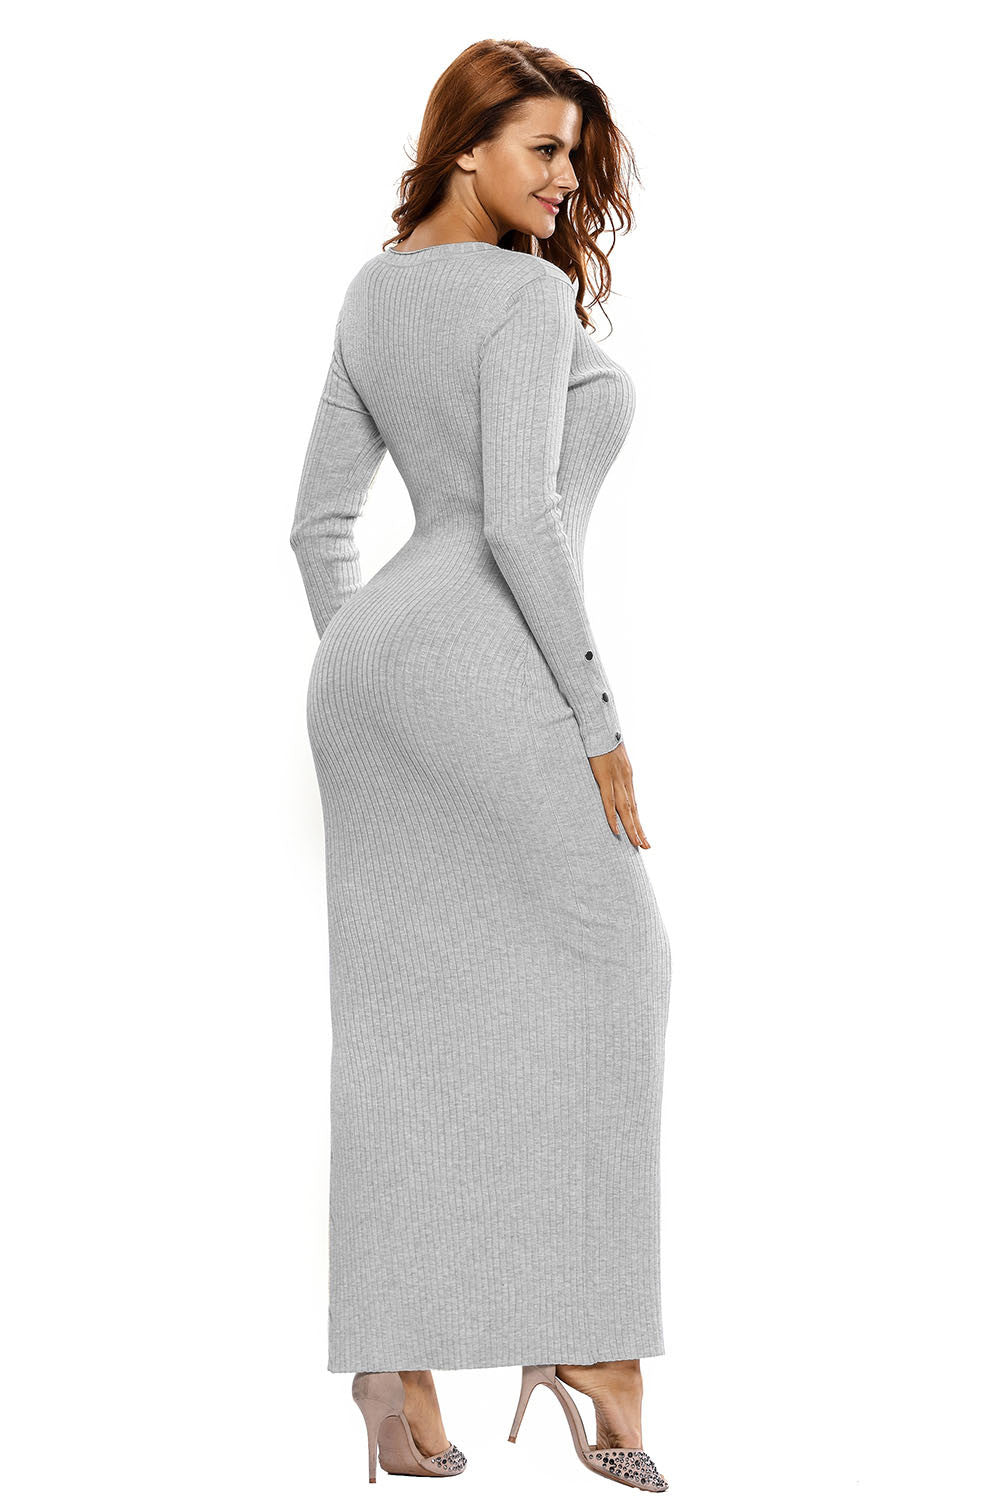 Her Ribbed Knit Maxi Dress Grey Trendsetter Long Sweater Dress